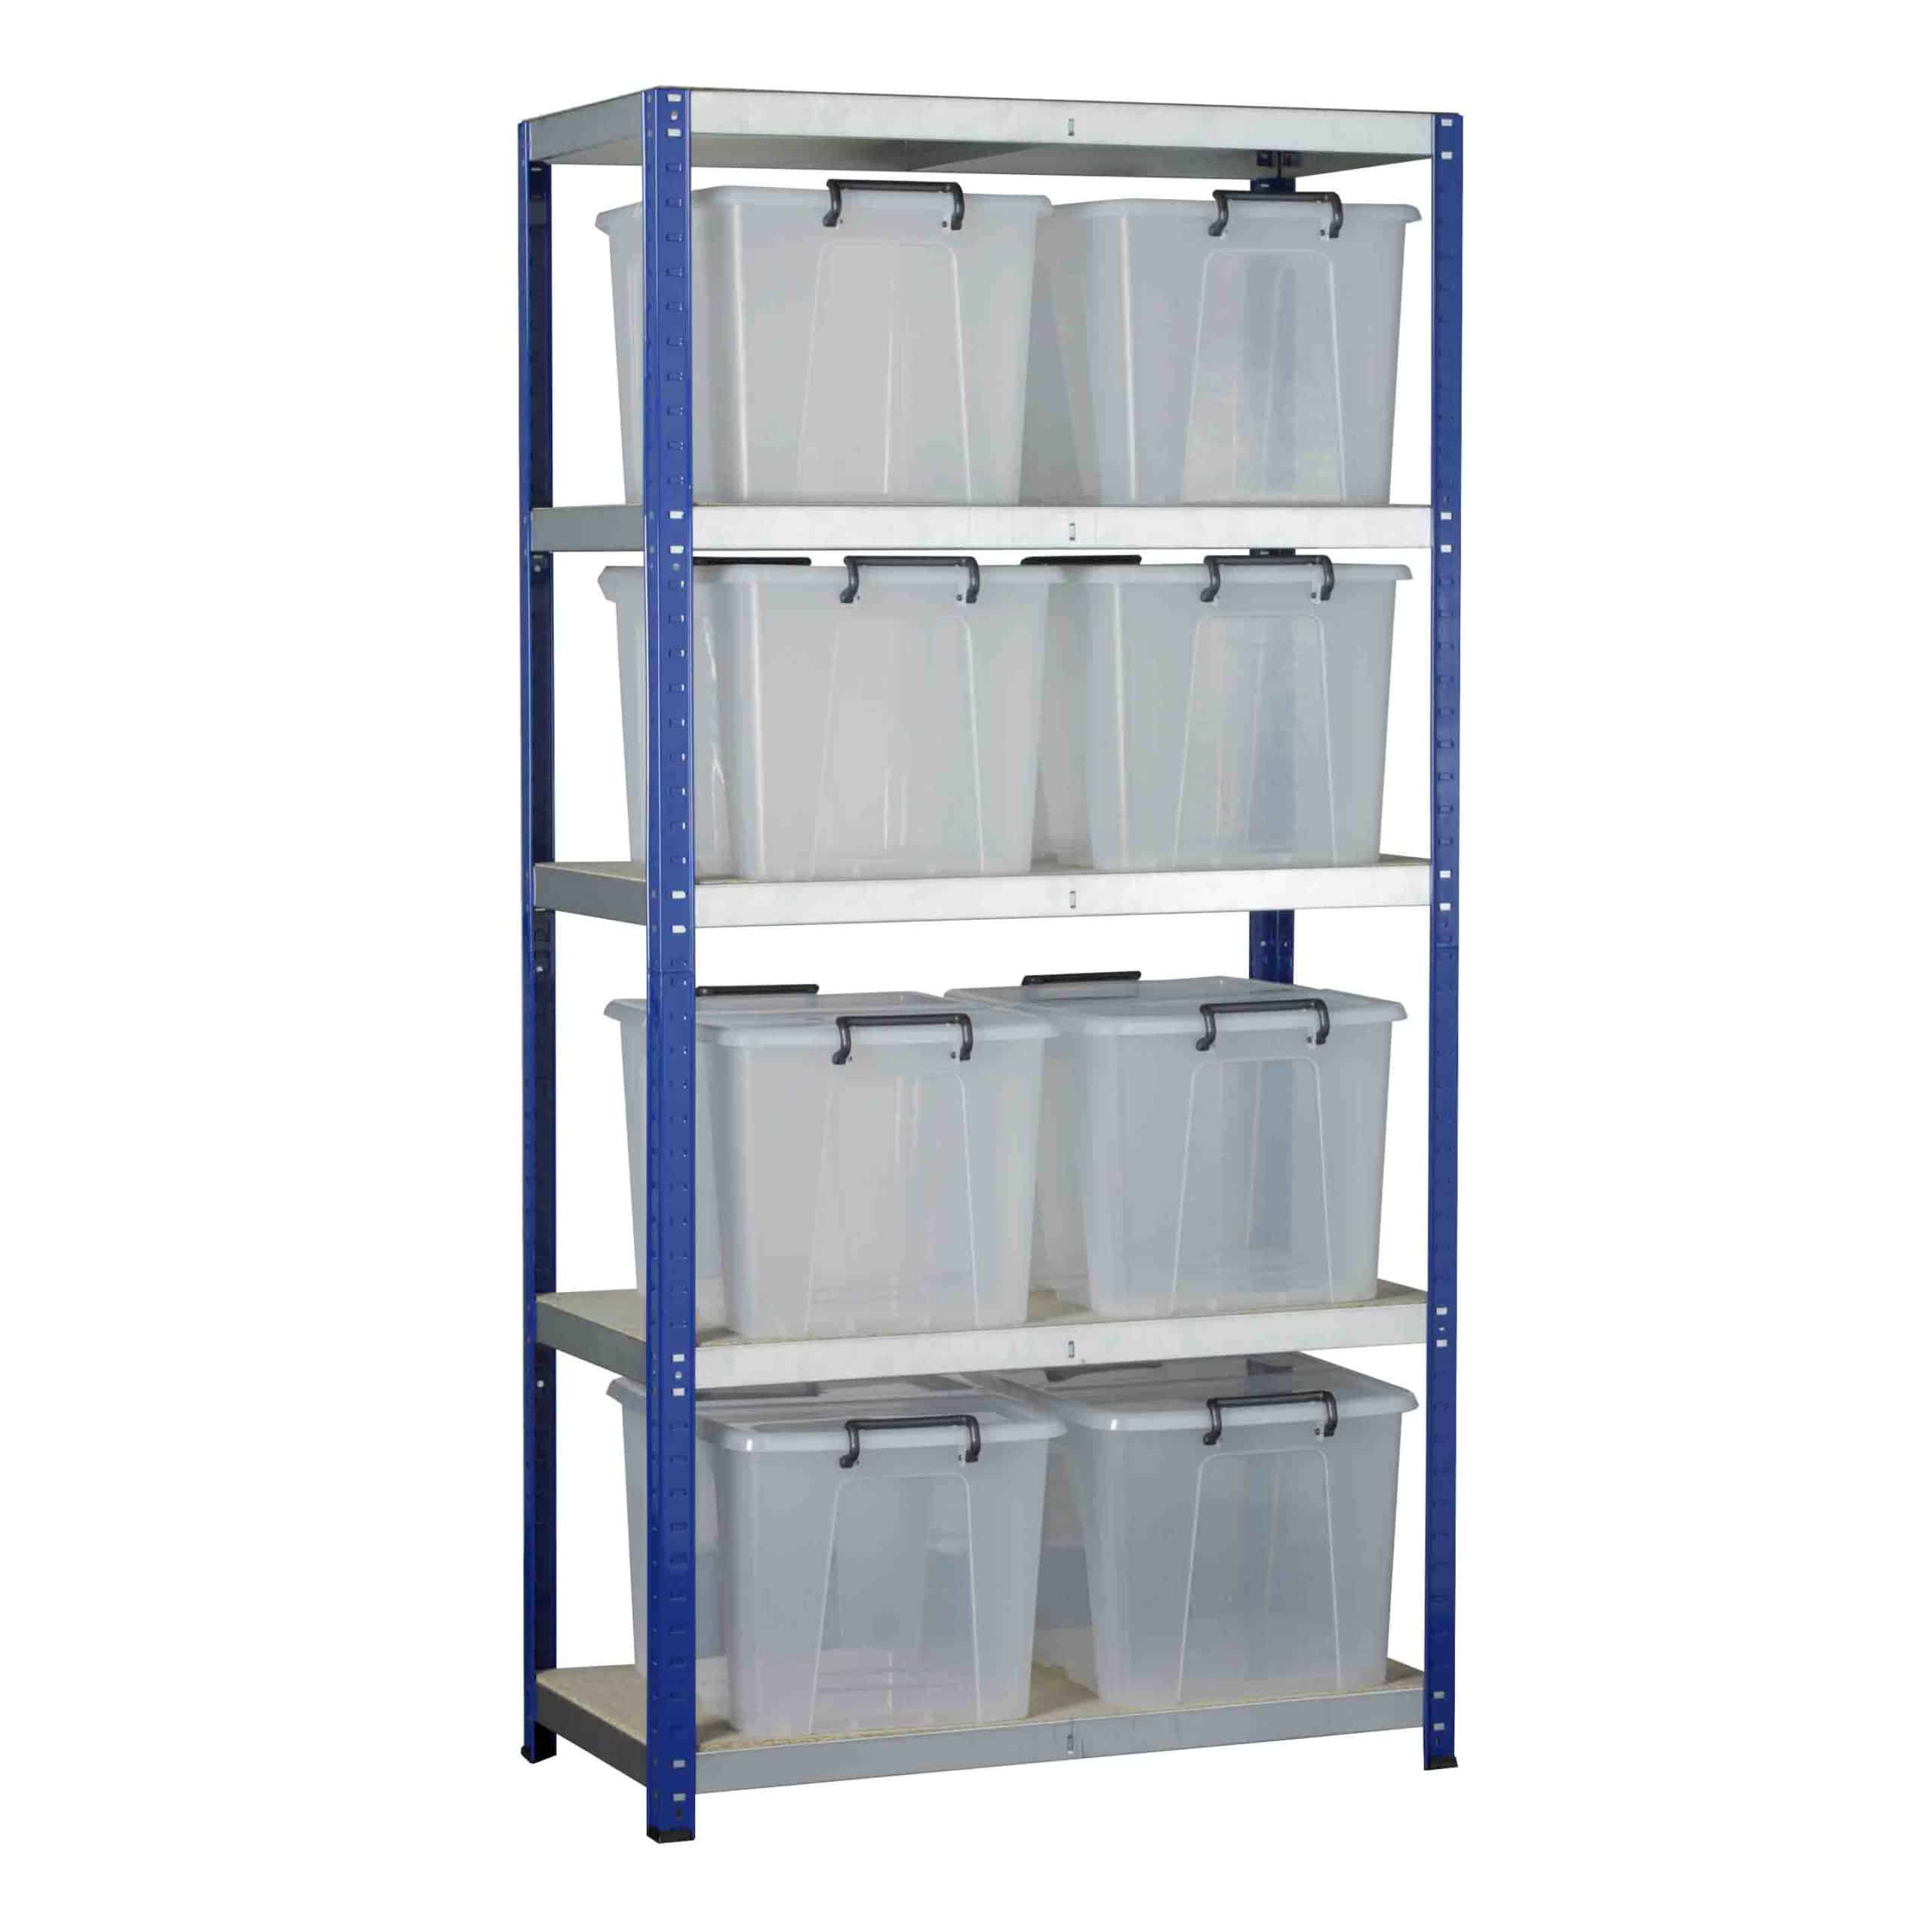 Ecorax Shelving with 8 Storemaster Containers